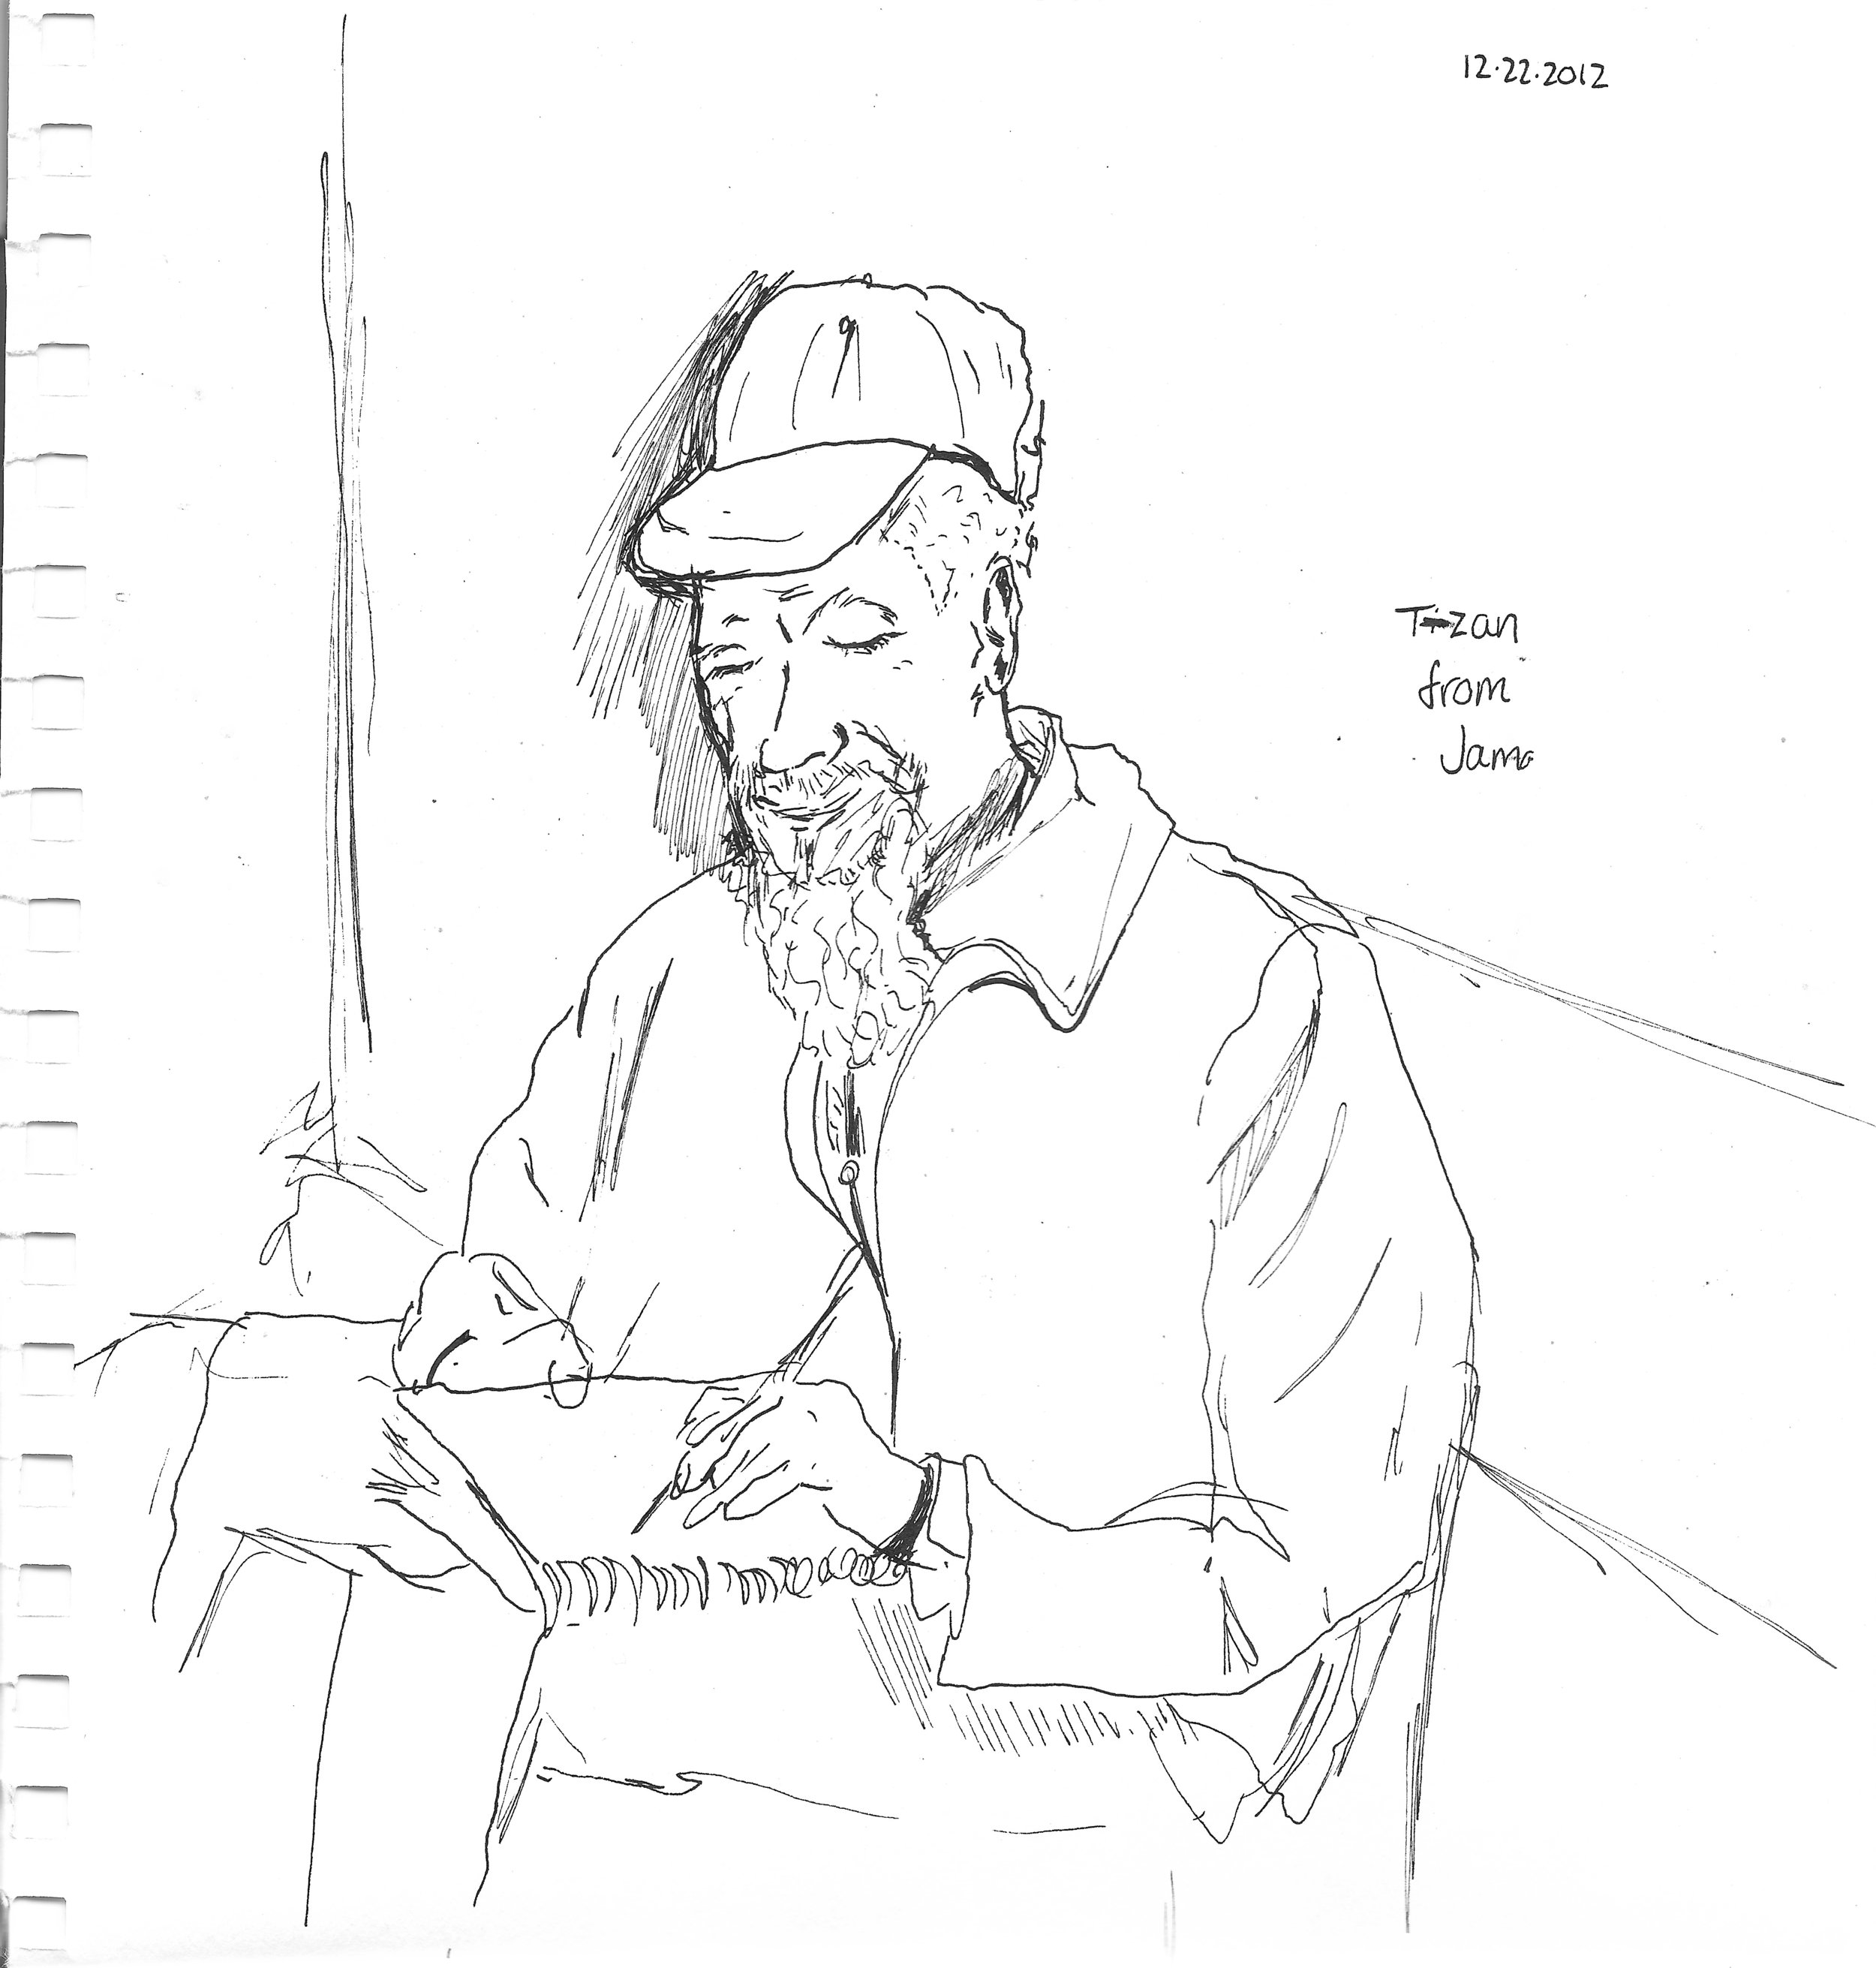 Sketchbook_Miami_12_11